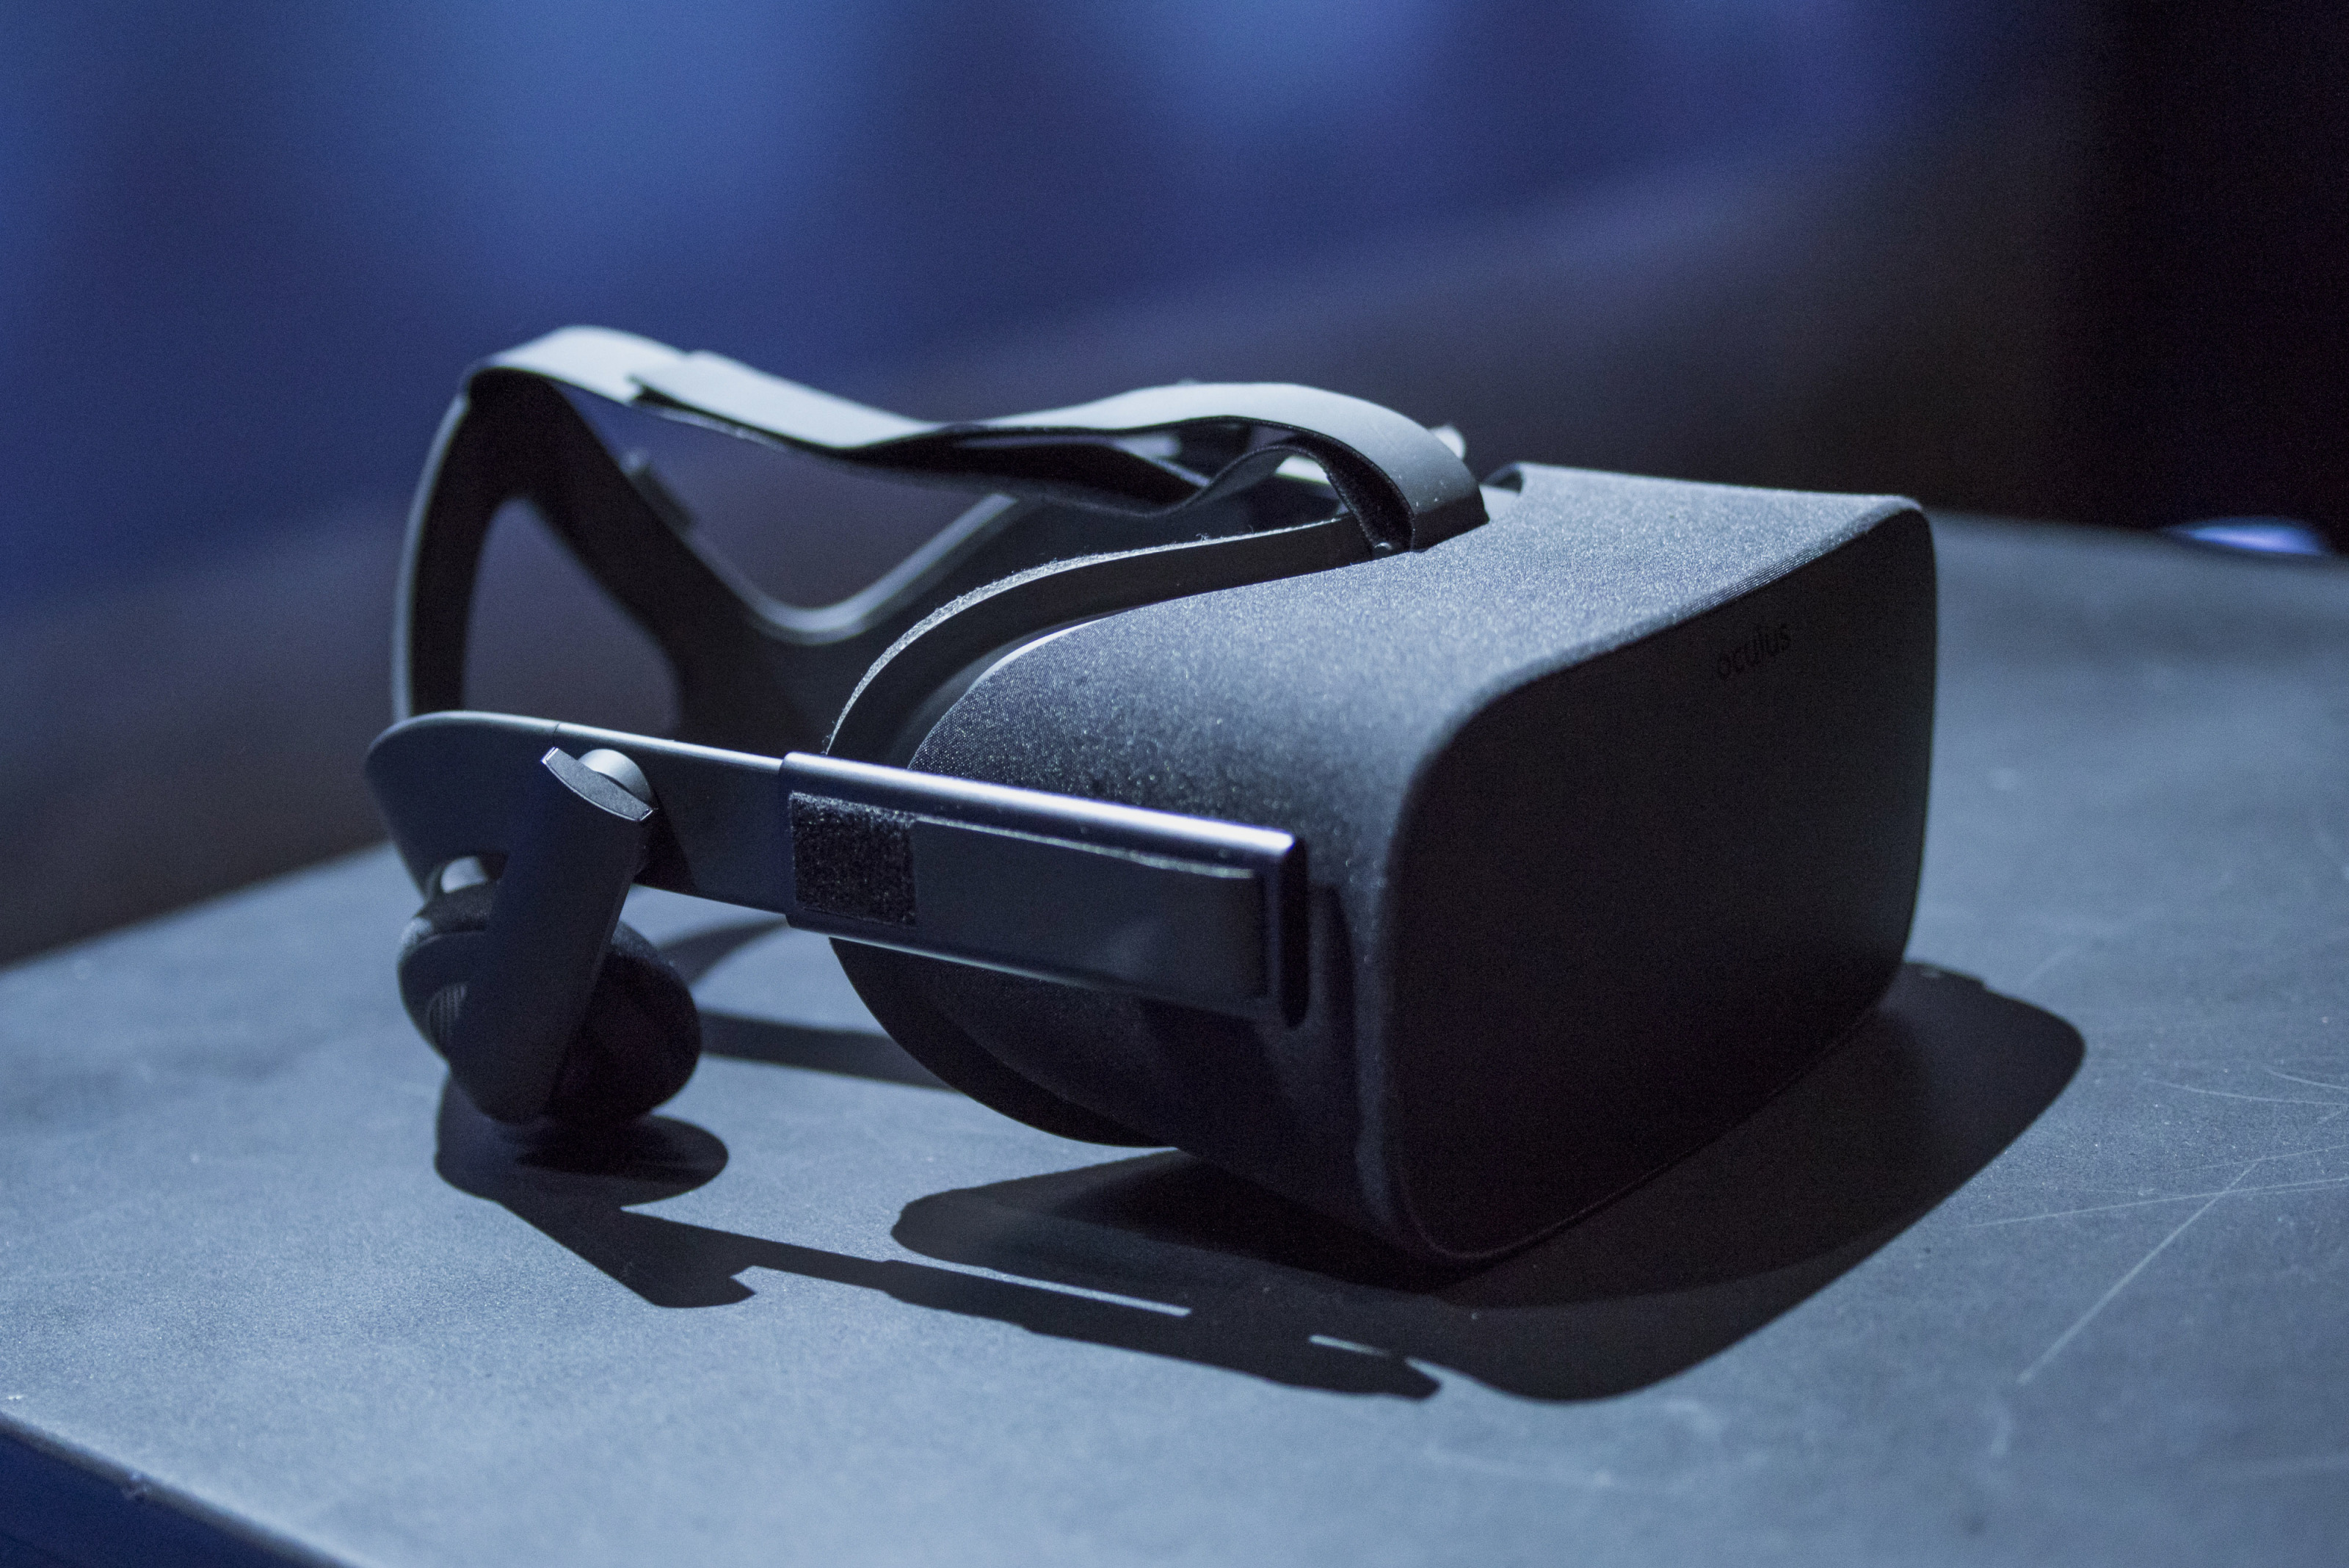 The Oculus Rift is arranged for a photograph during the Oculus VR Inc.  Step Into The Rift  event in San Francisco, California, U.S., on Thursday, June 11, 2015.